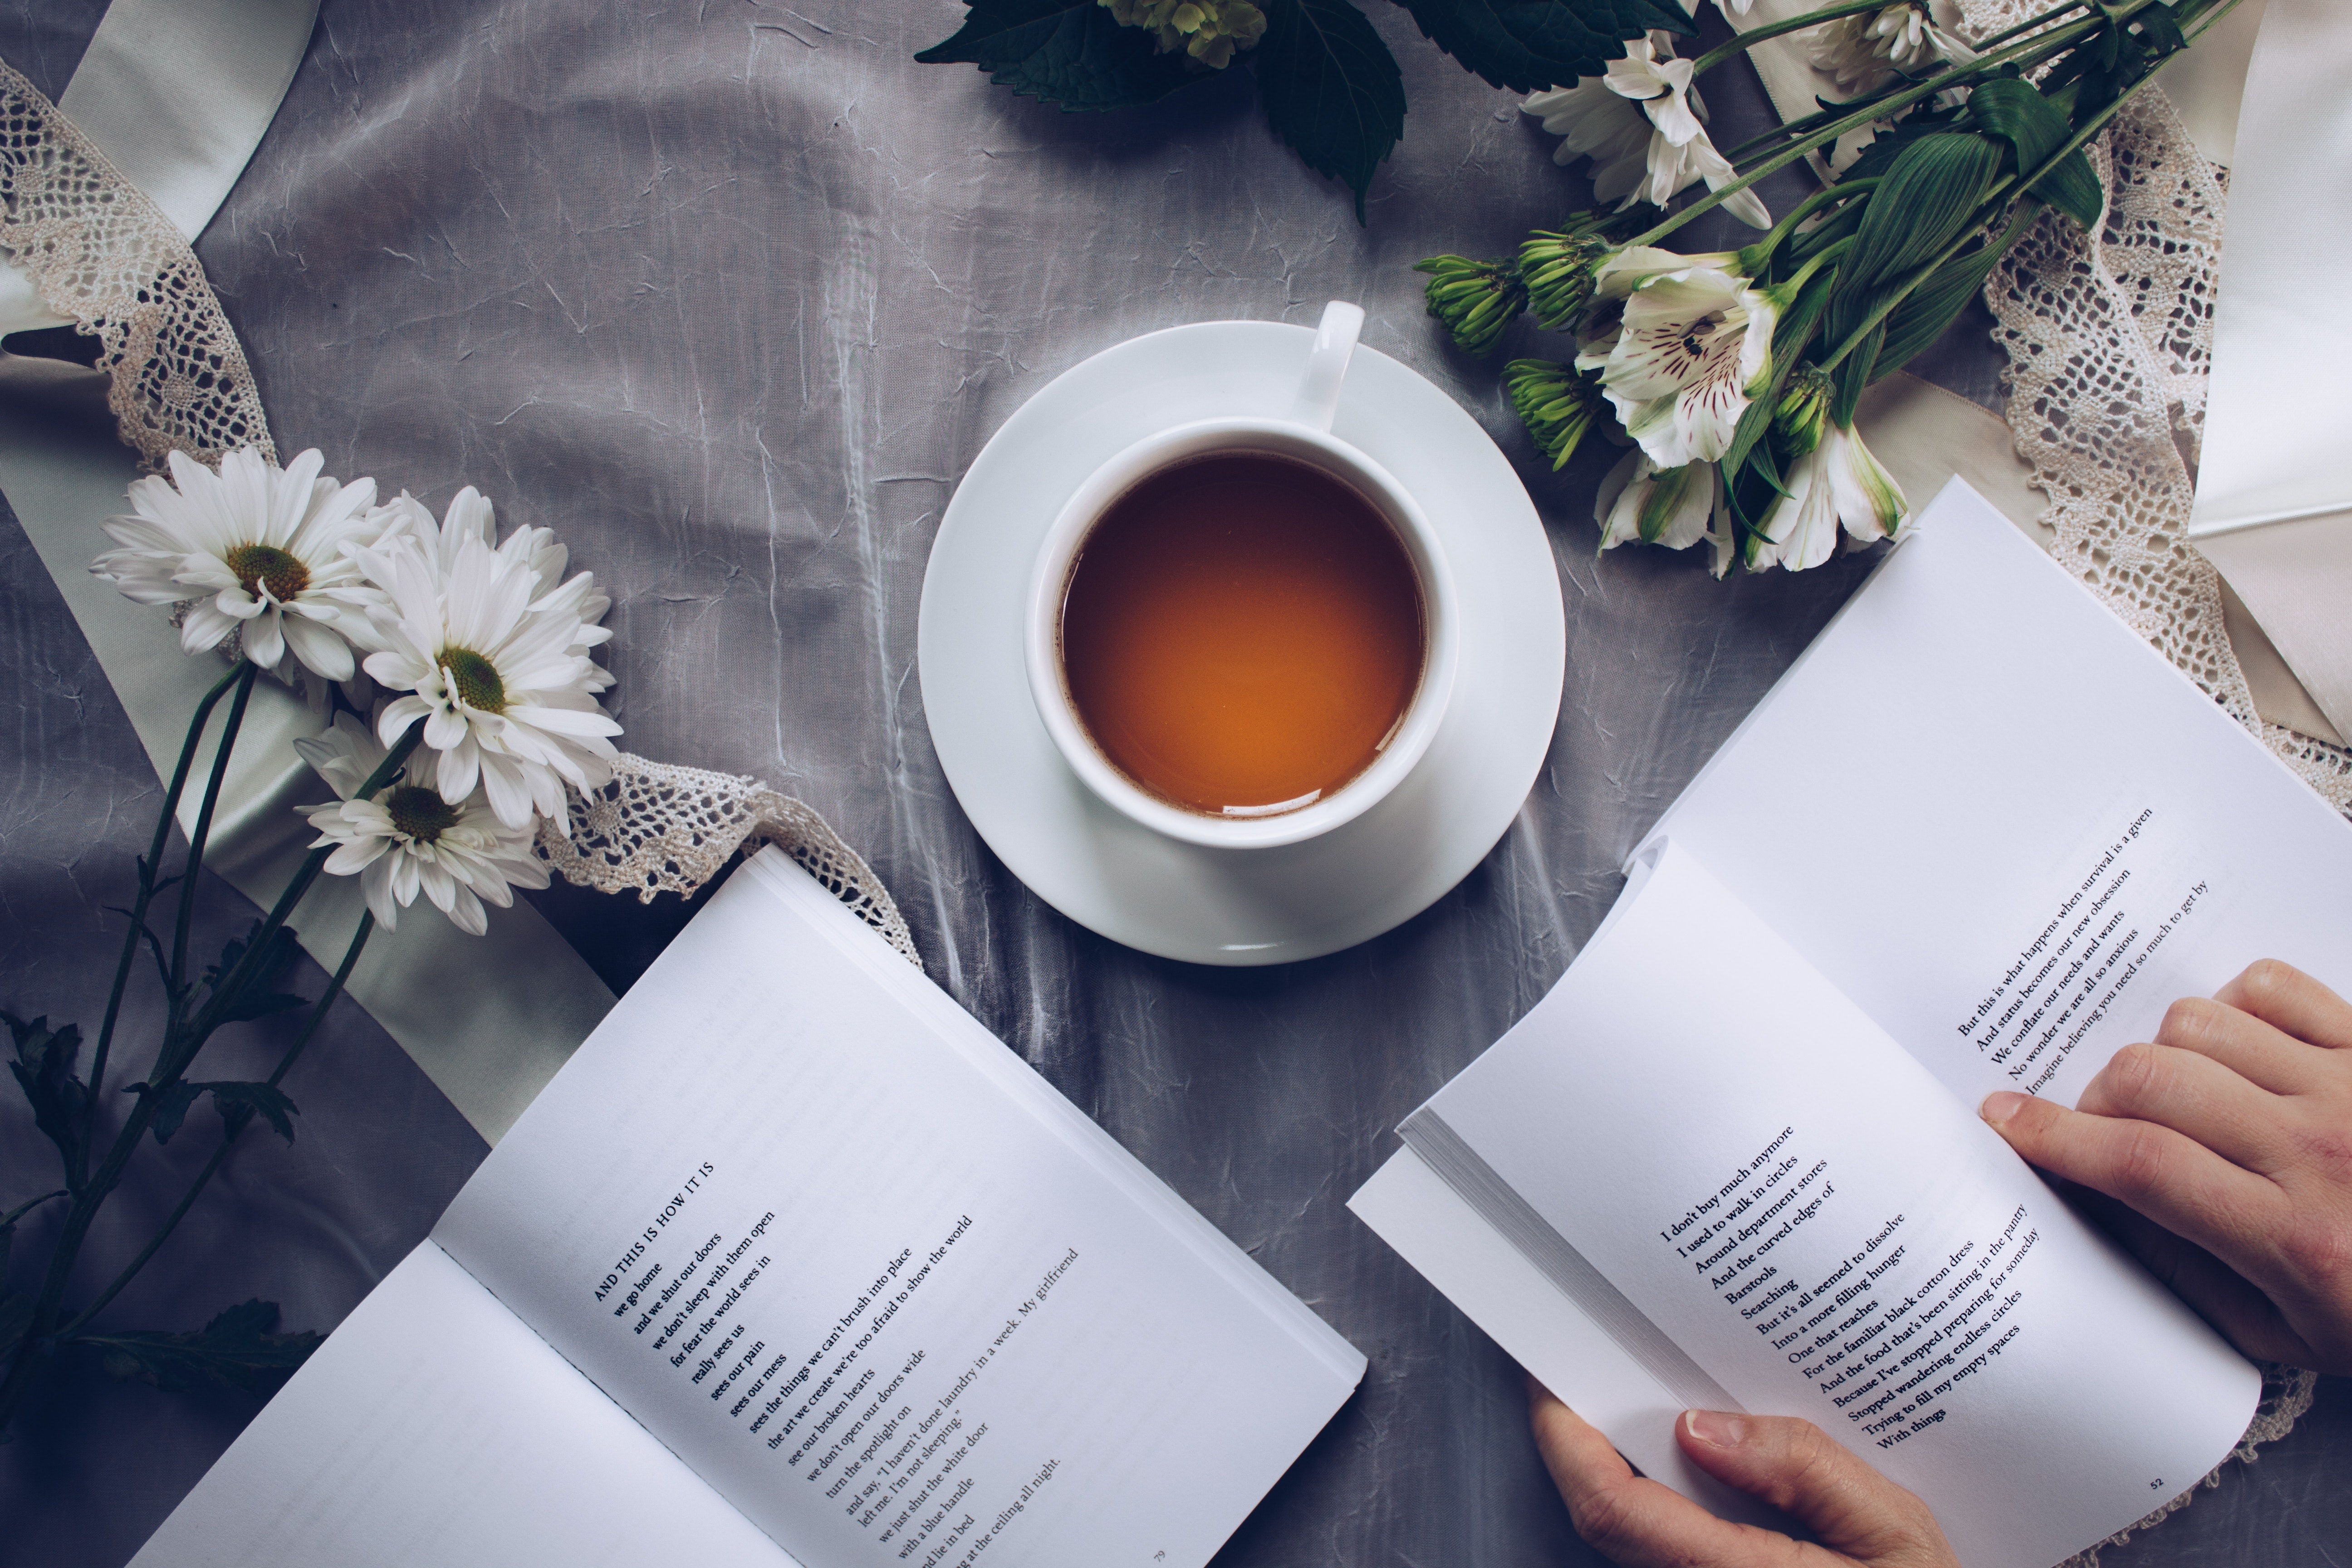 Photo of poetry books with a cup of tea and flowers.